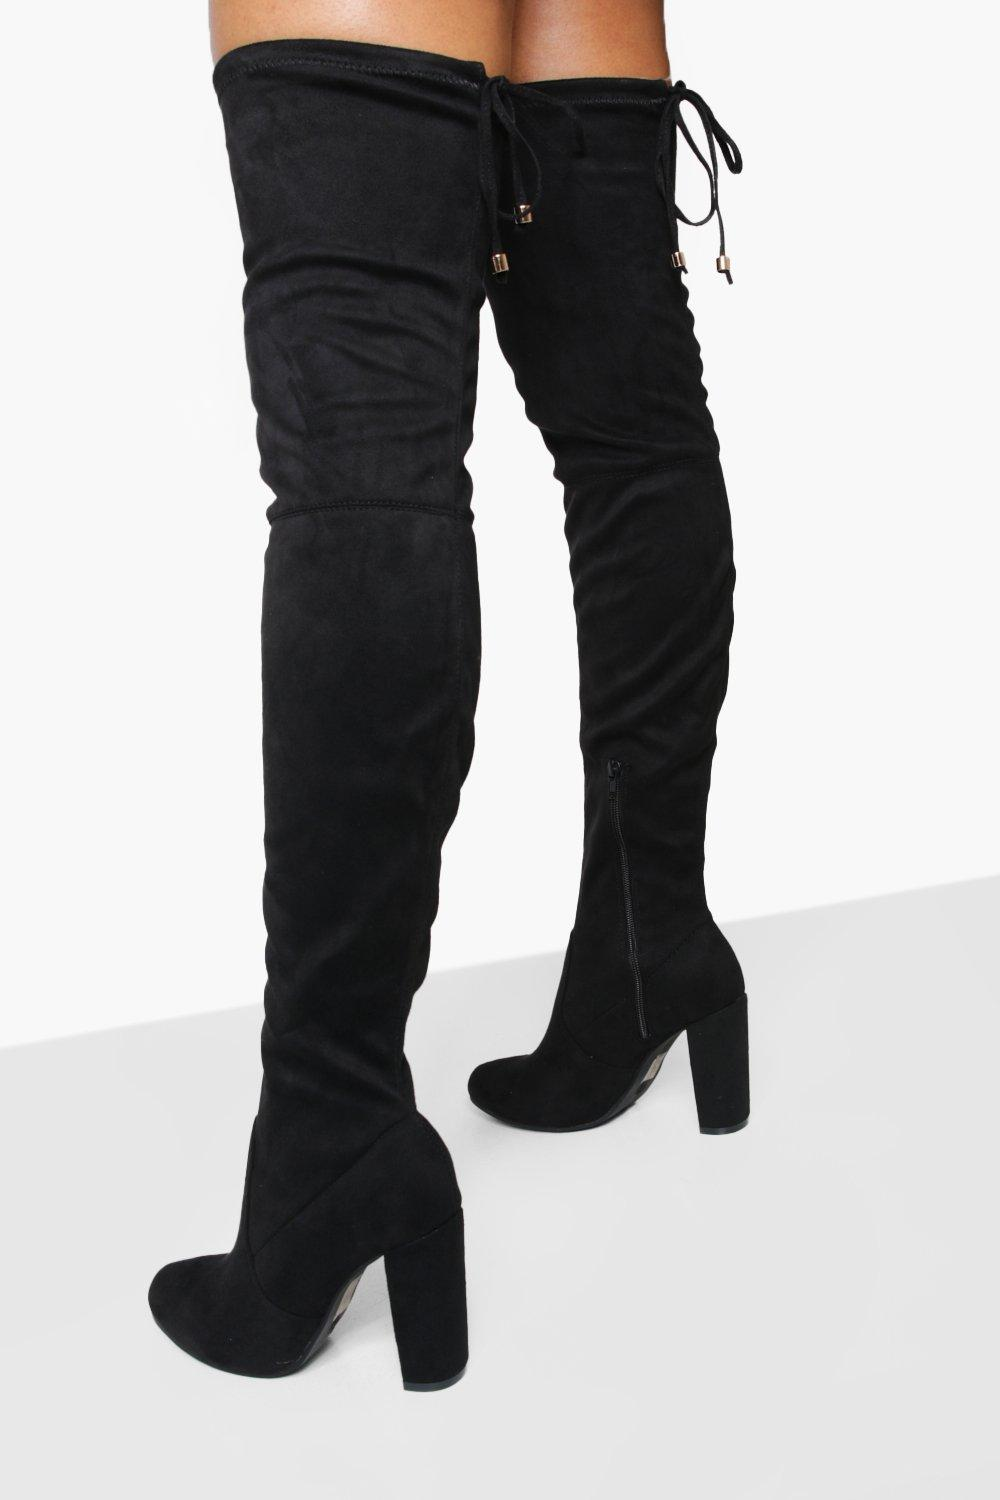 851ee694093 Block Heel Tie Back Thigh High Boots. Hover to zoom